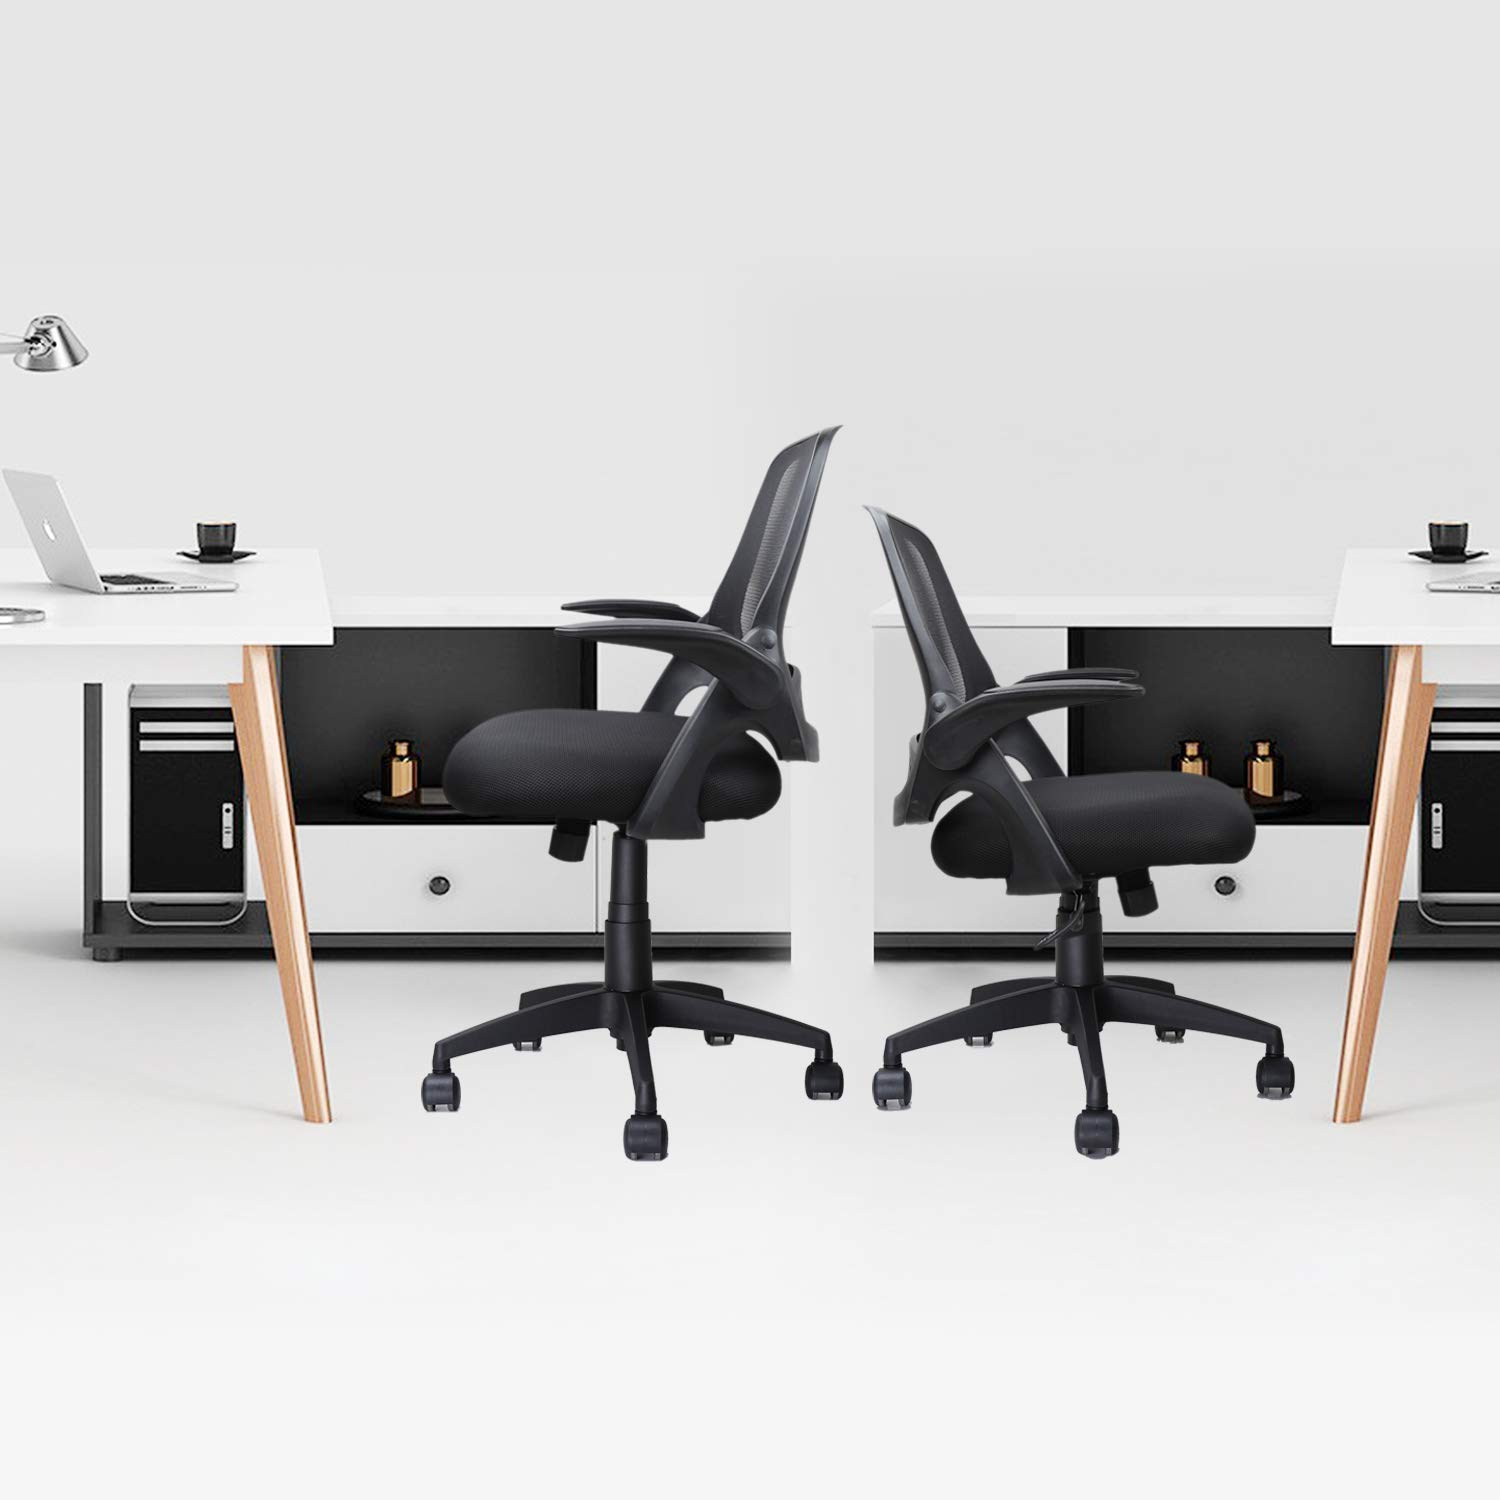 Ergousit Mid-Back Mesh Office Chair, Ergonomic Desk Chairs Swivel Computer Task Chairs with Adjustable Height and Flip-up Armrest - Lumbar Support and Sponge Cushion in Black (Black) by Ergousit (Image #5)